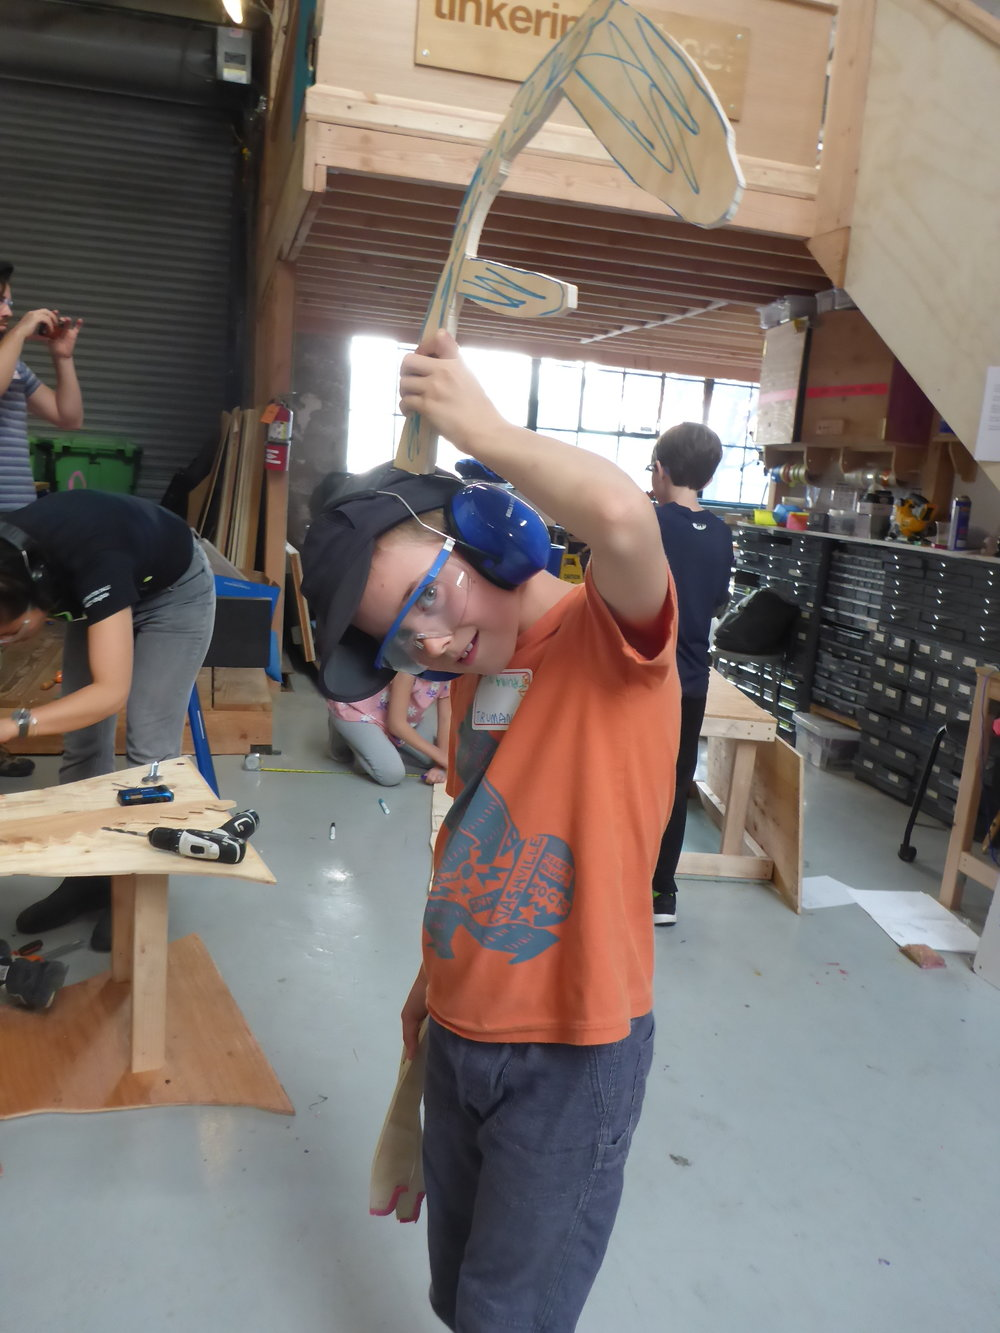 Truman proudly demonstrating how the dragon horns he cut out will attach to the dragon's head. They will also function as handles for the rider.